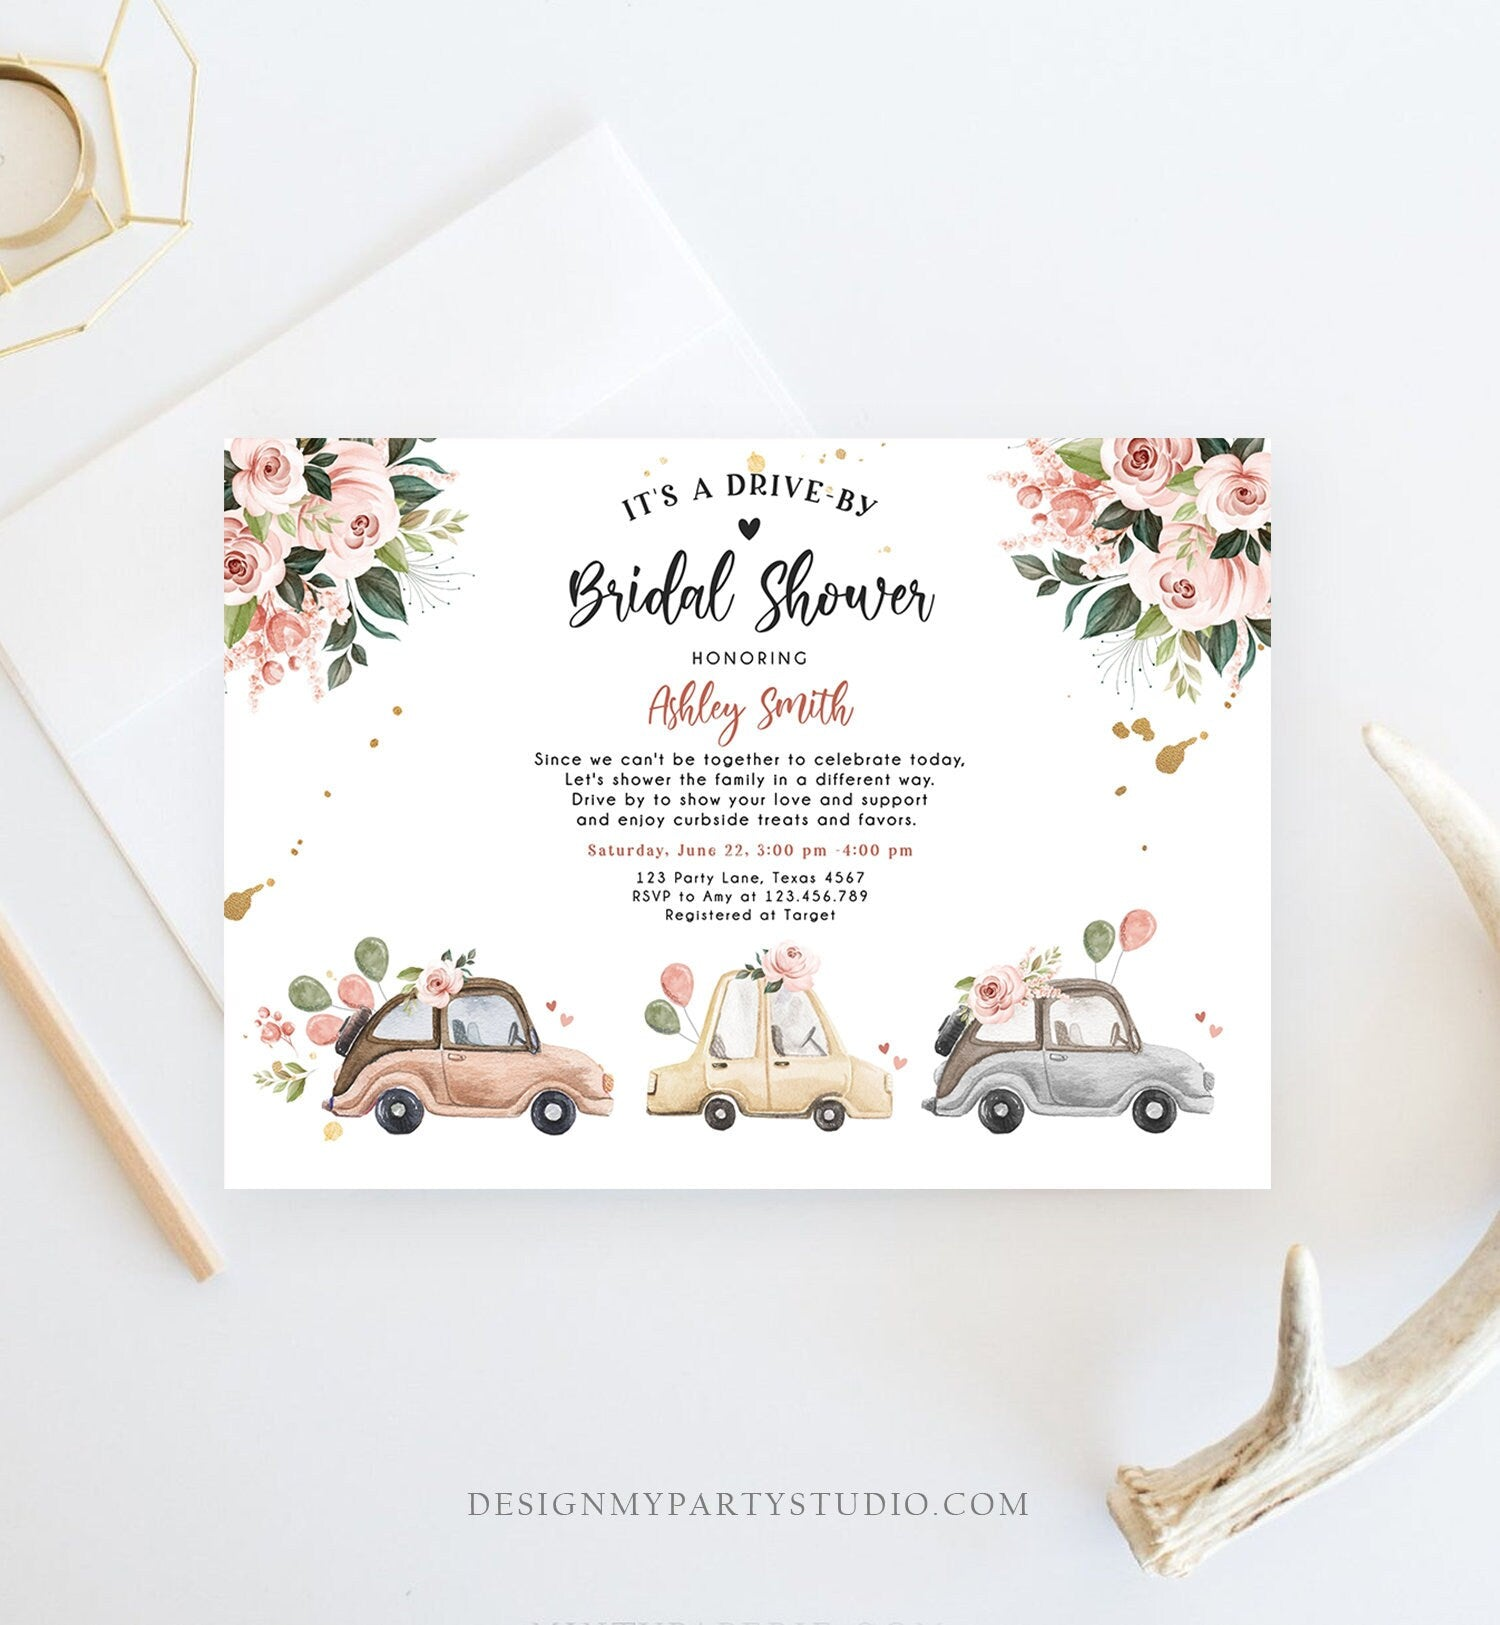 Editable Drive By Bridal Shower Invitation Couples Shower Invite Quarantine Drive Through Neutral Floral Wedding Digital Corjl Template 0335